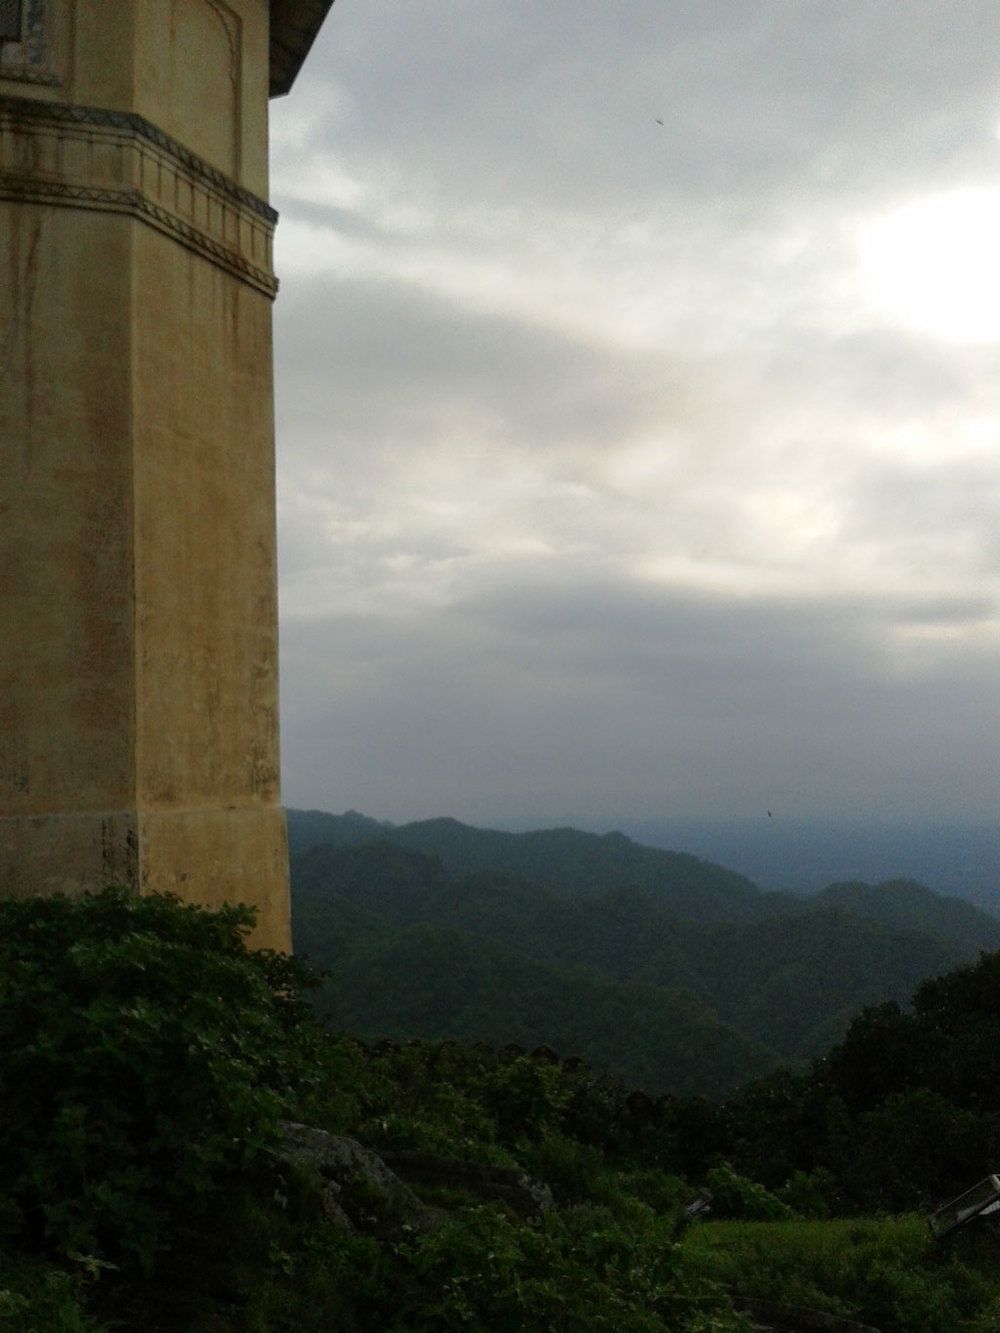 Kumbhalgarh Photo credit: Prashant Prakash